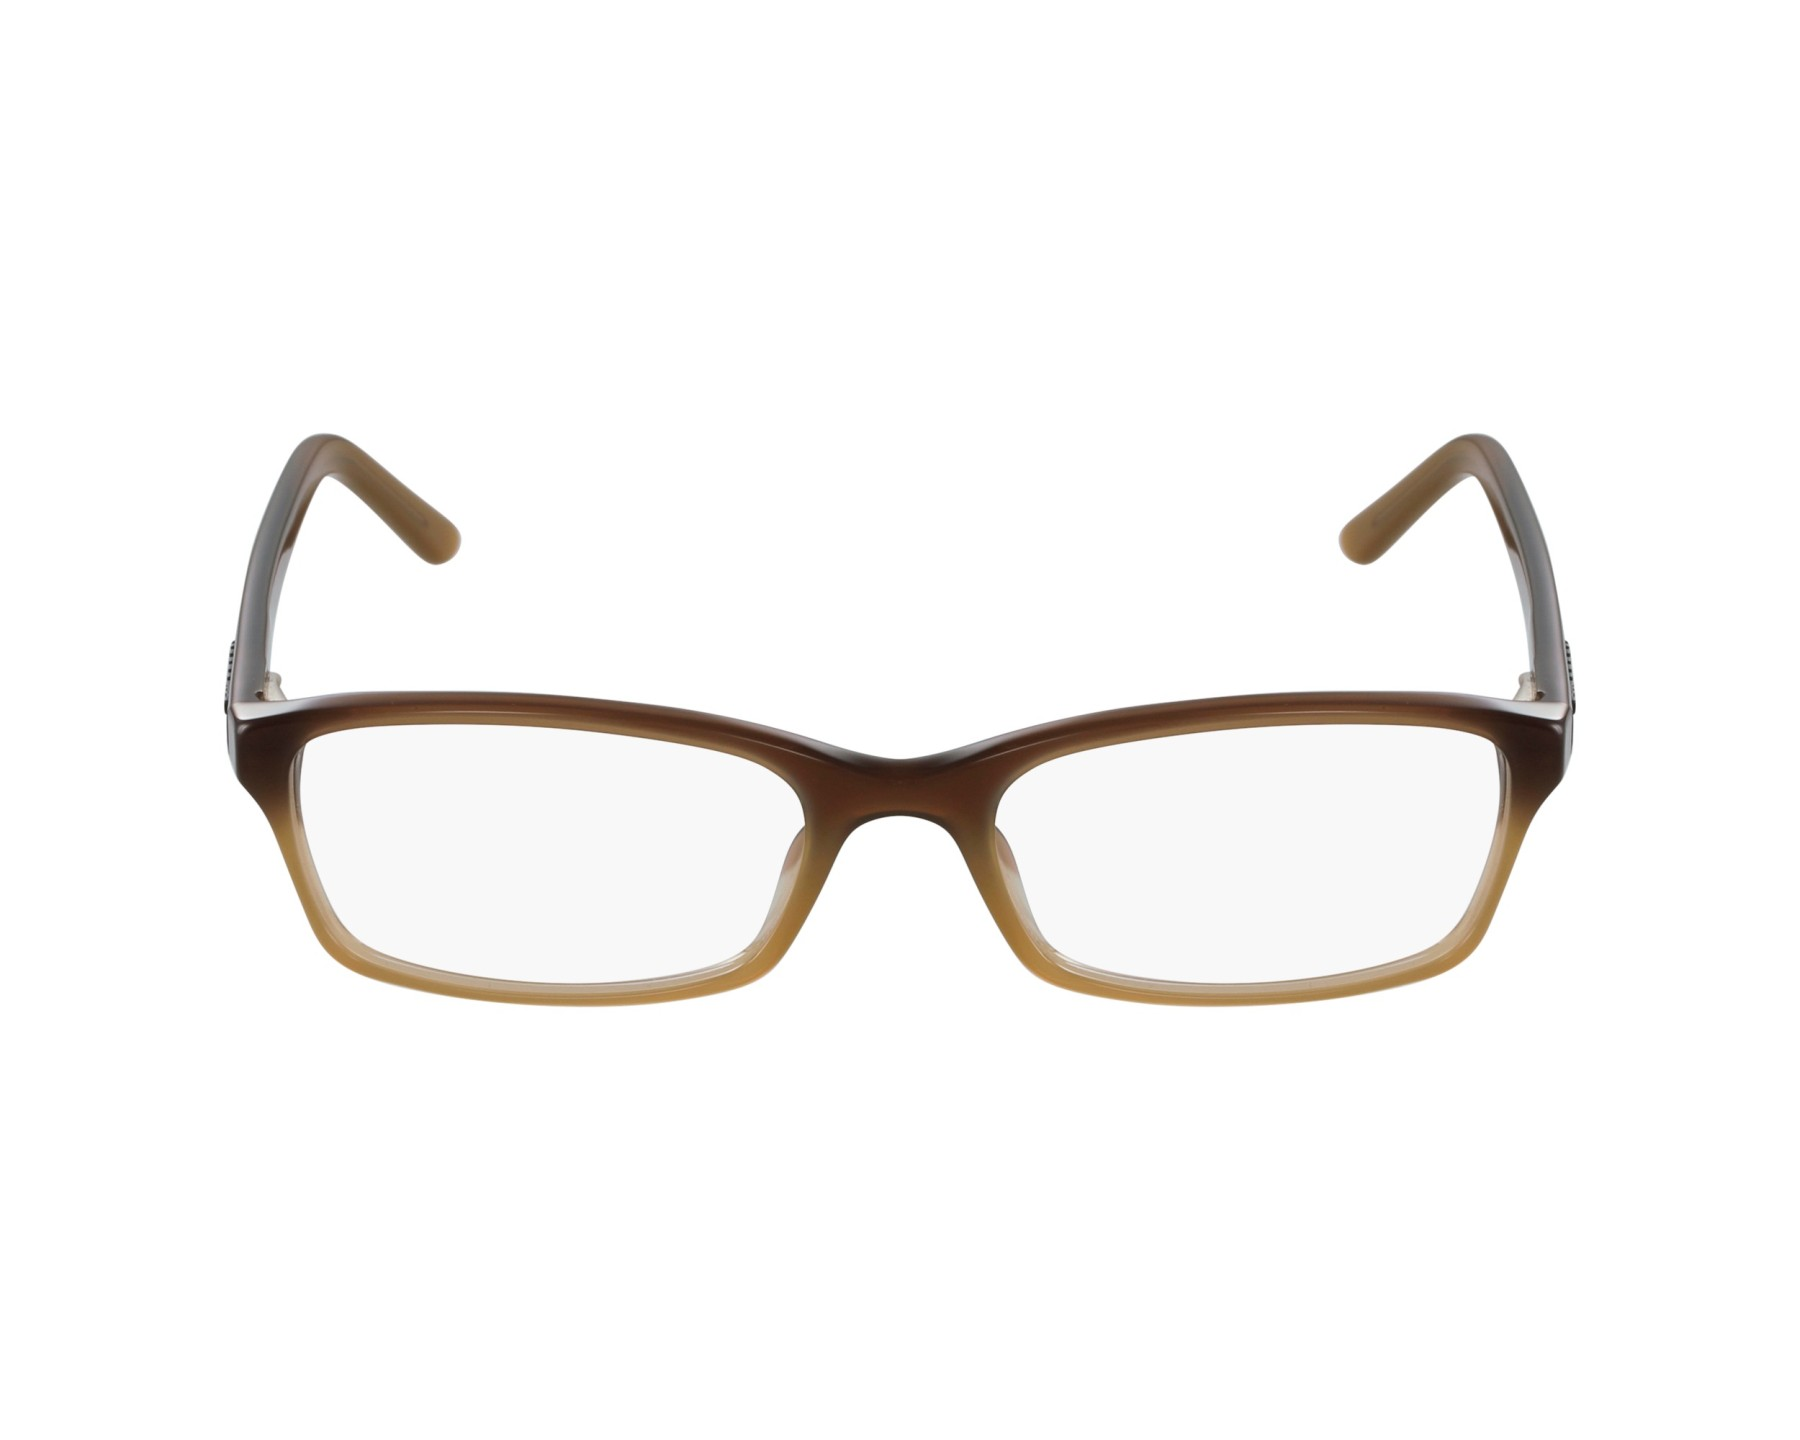 Eyeglass Frames Be2073 : Order your Burberry eyeglasses BE2073 3369 51 today